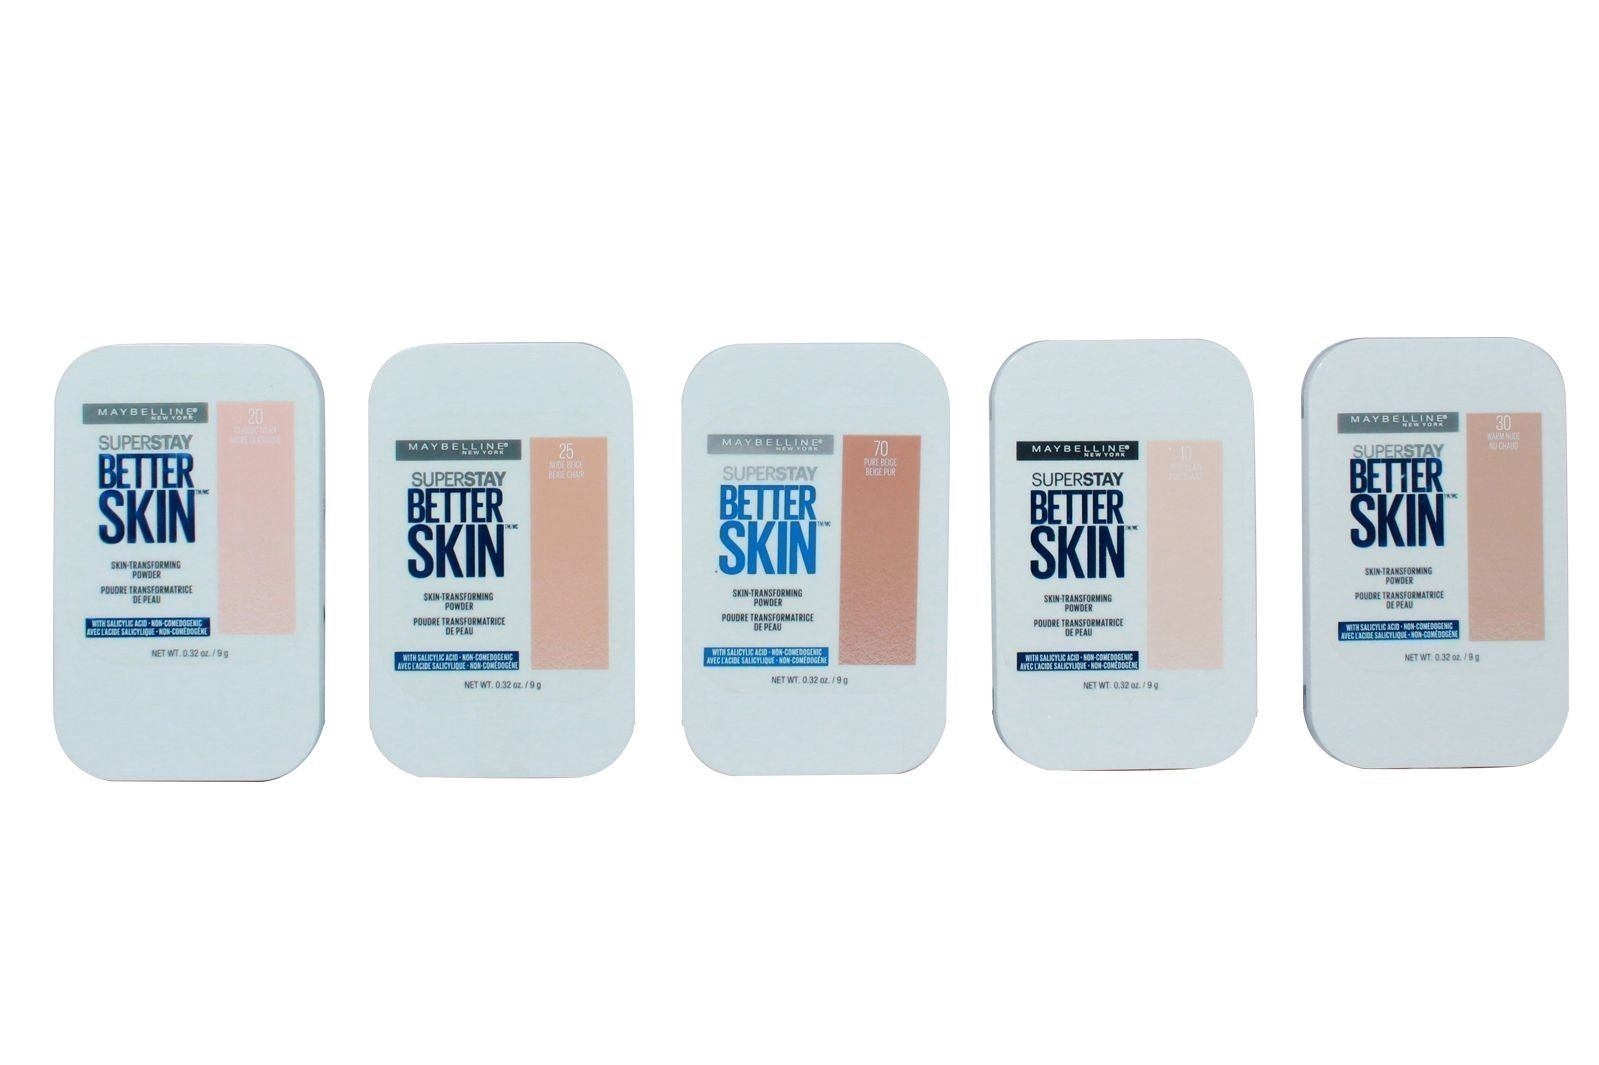 Maybelline Super Stay Better Skin Skin - Transforming Powder 5 Shades Assorted (MBP6)